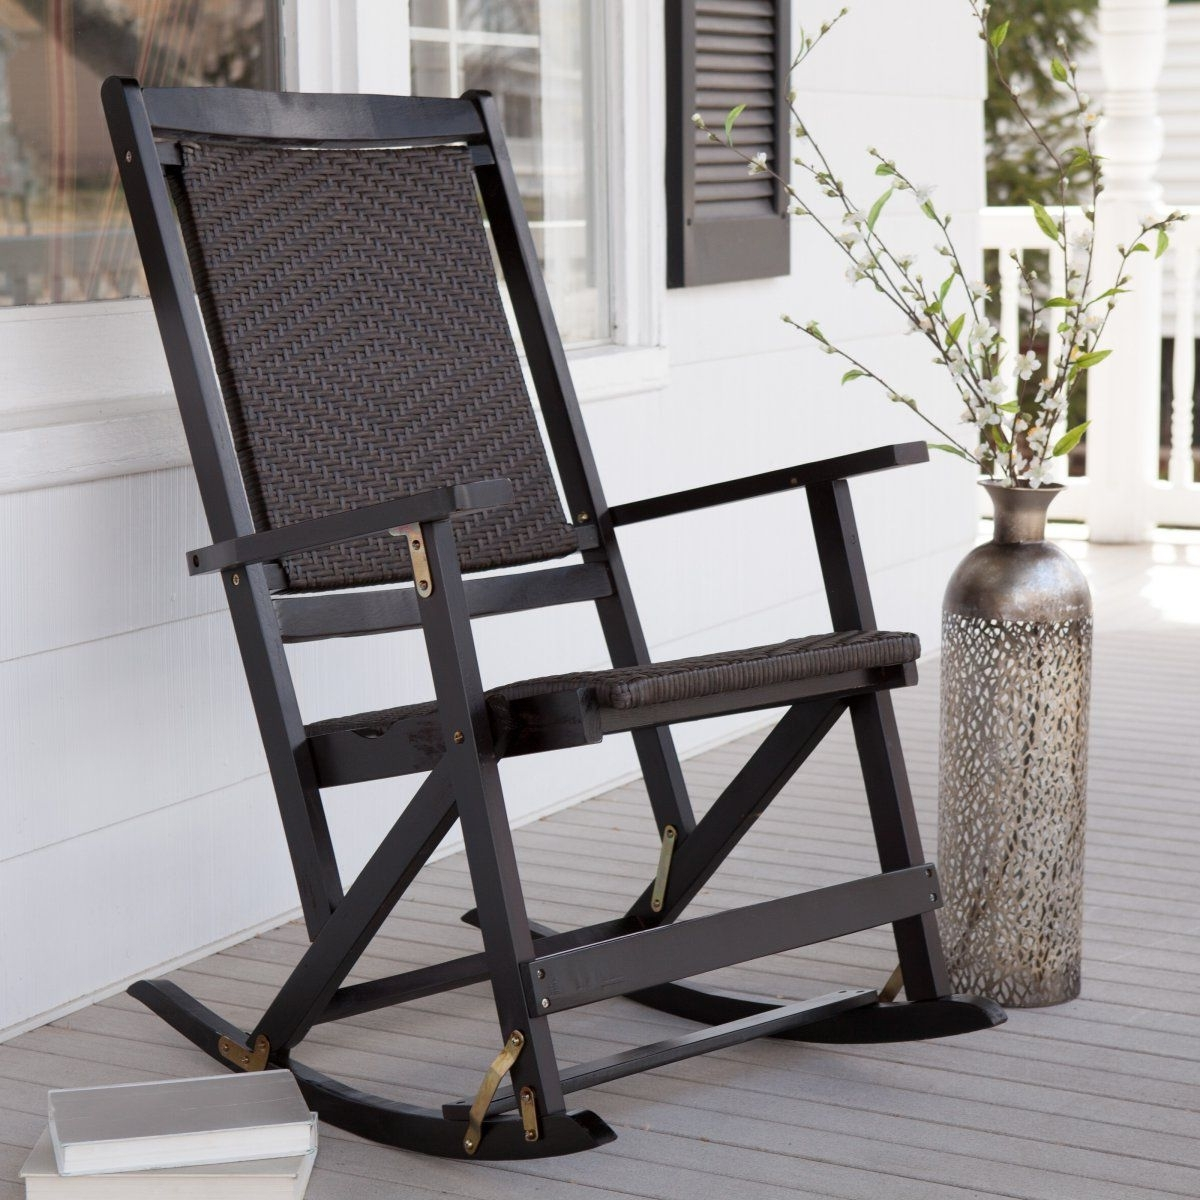 Favorite The Best How Grease Black Outdoor Rocking U Bed And Shower Picture Throughout Unique Outdoor Rocking Chairs (View 9 of 15)